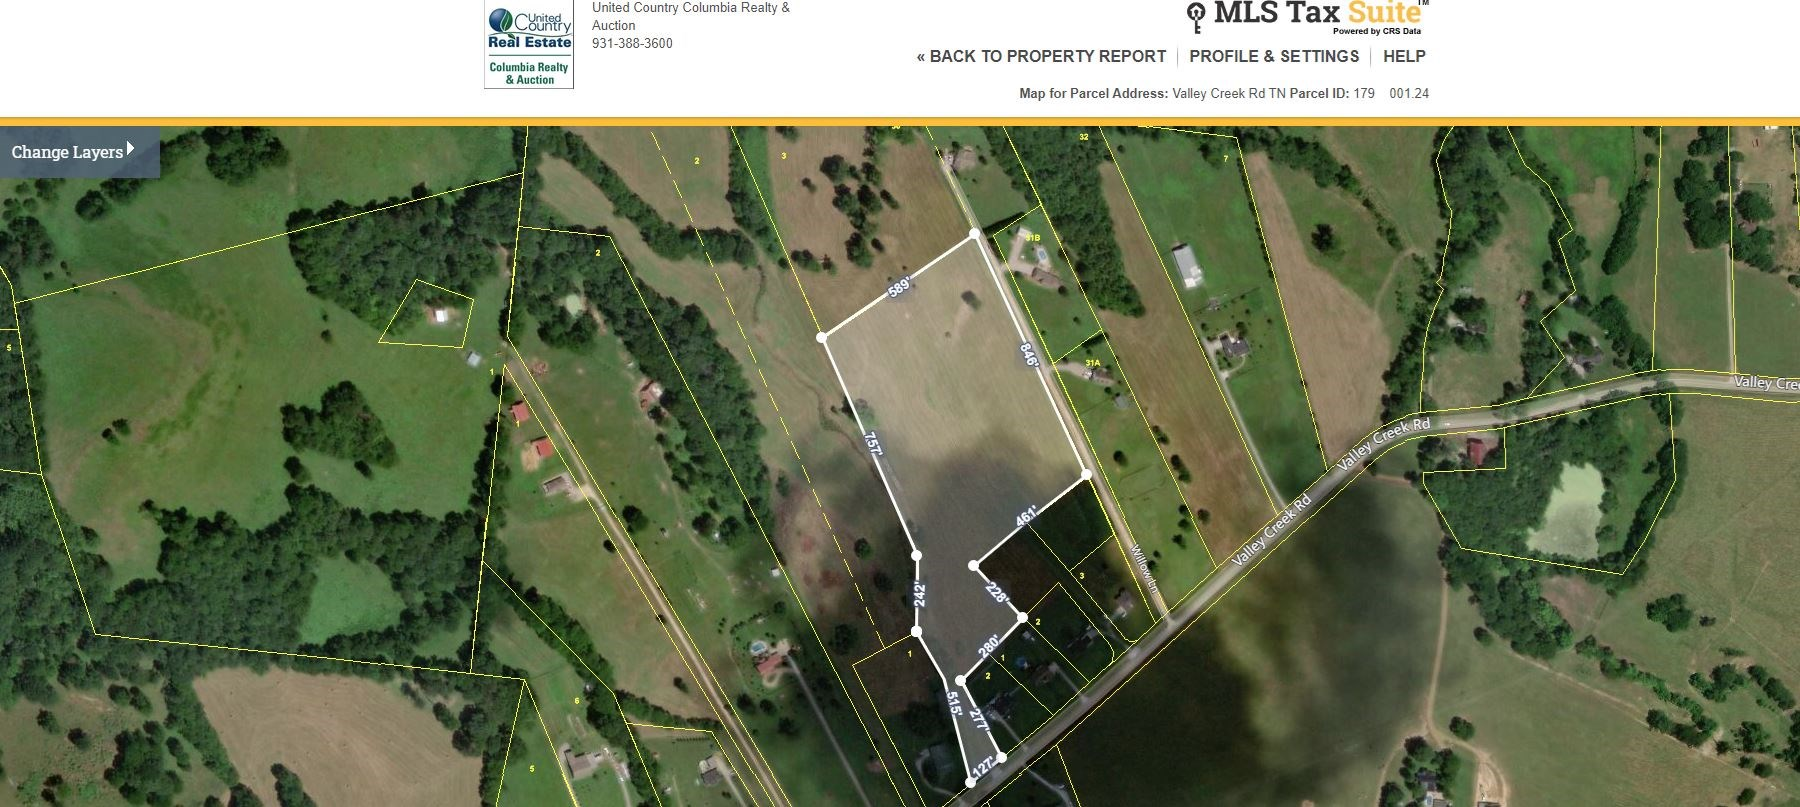 6.20 Acres of Tennessee Land for sale in Culleoka, Tennessee